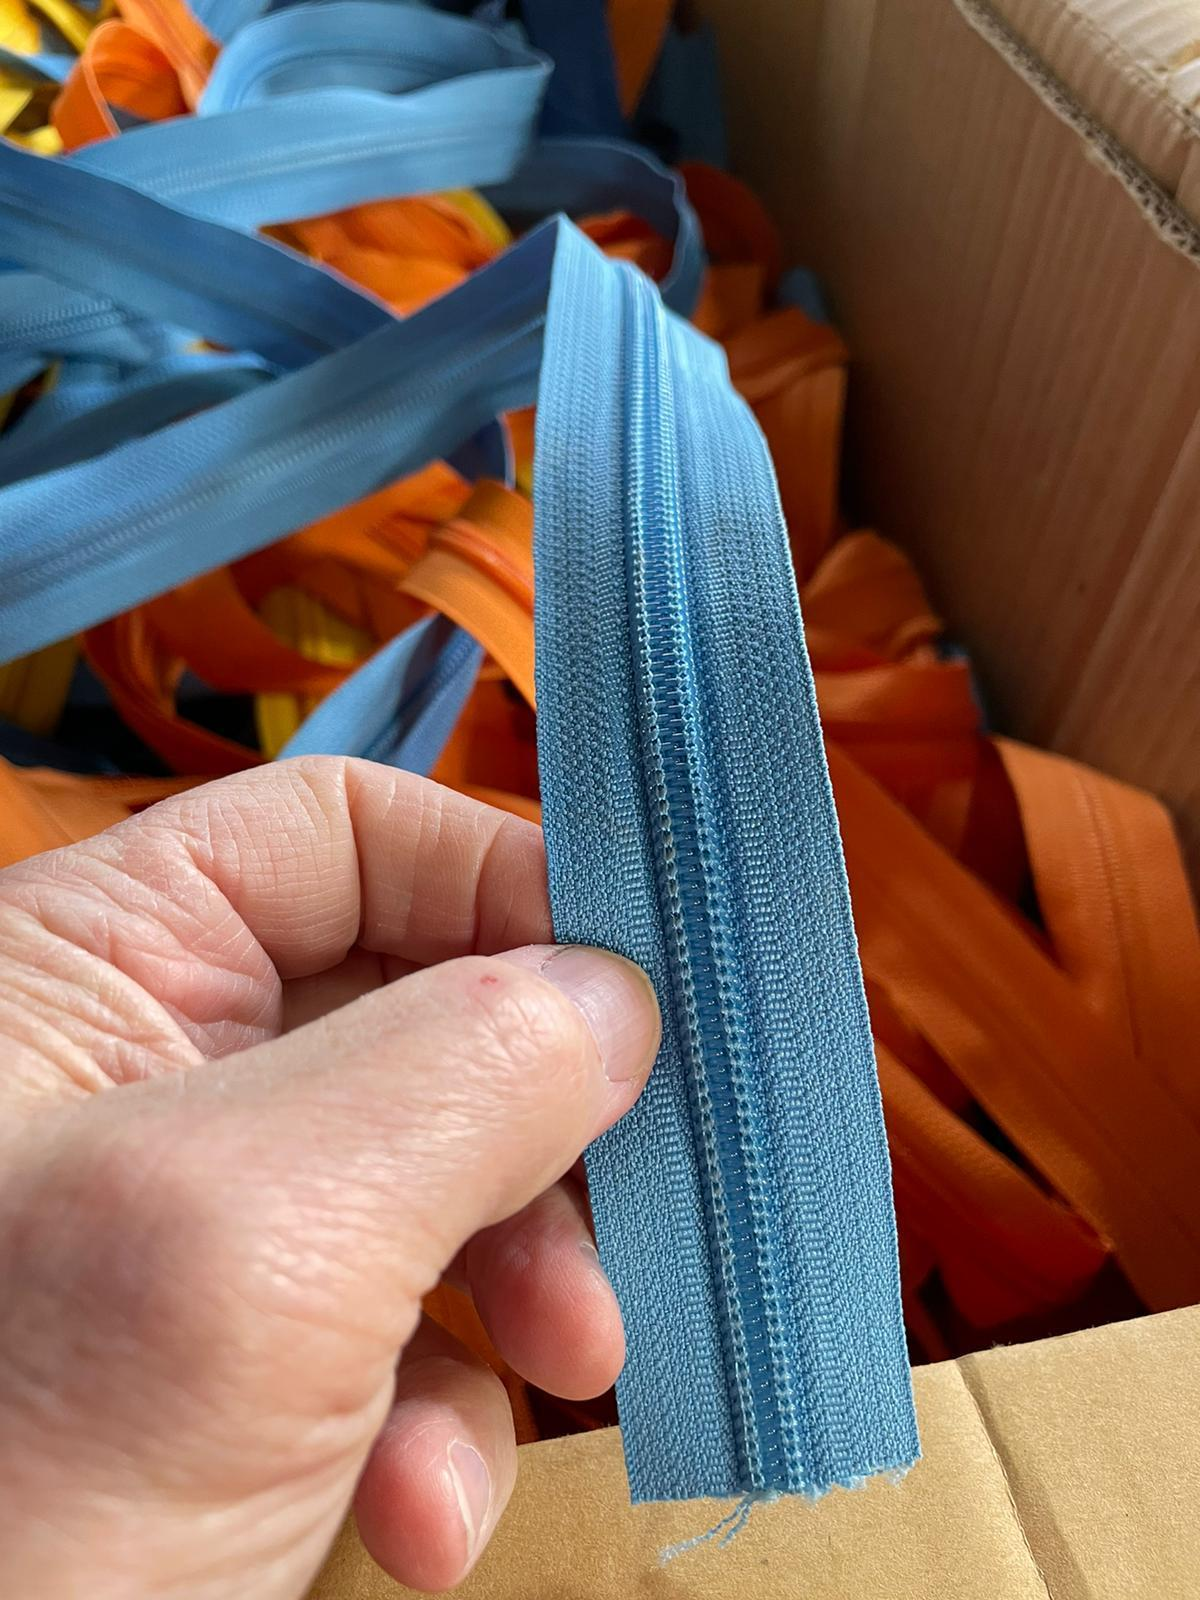 41036 - Zippers Available USA